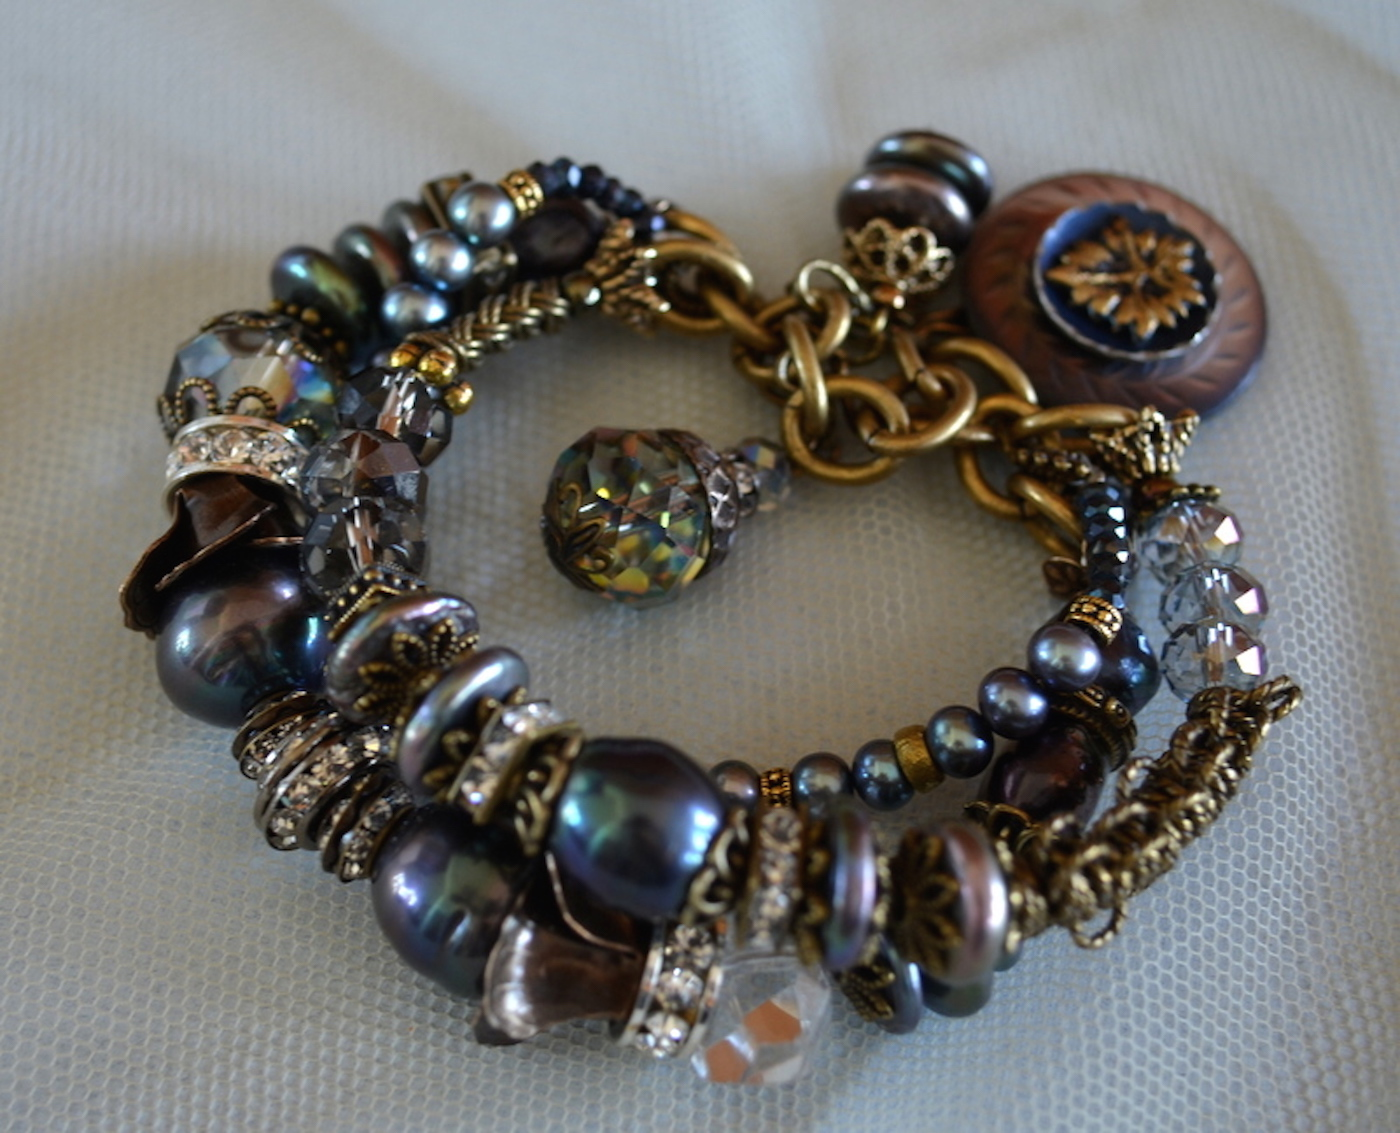 Queen of Sheba Bracelet